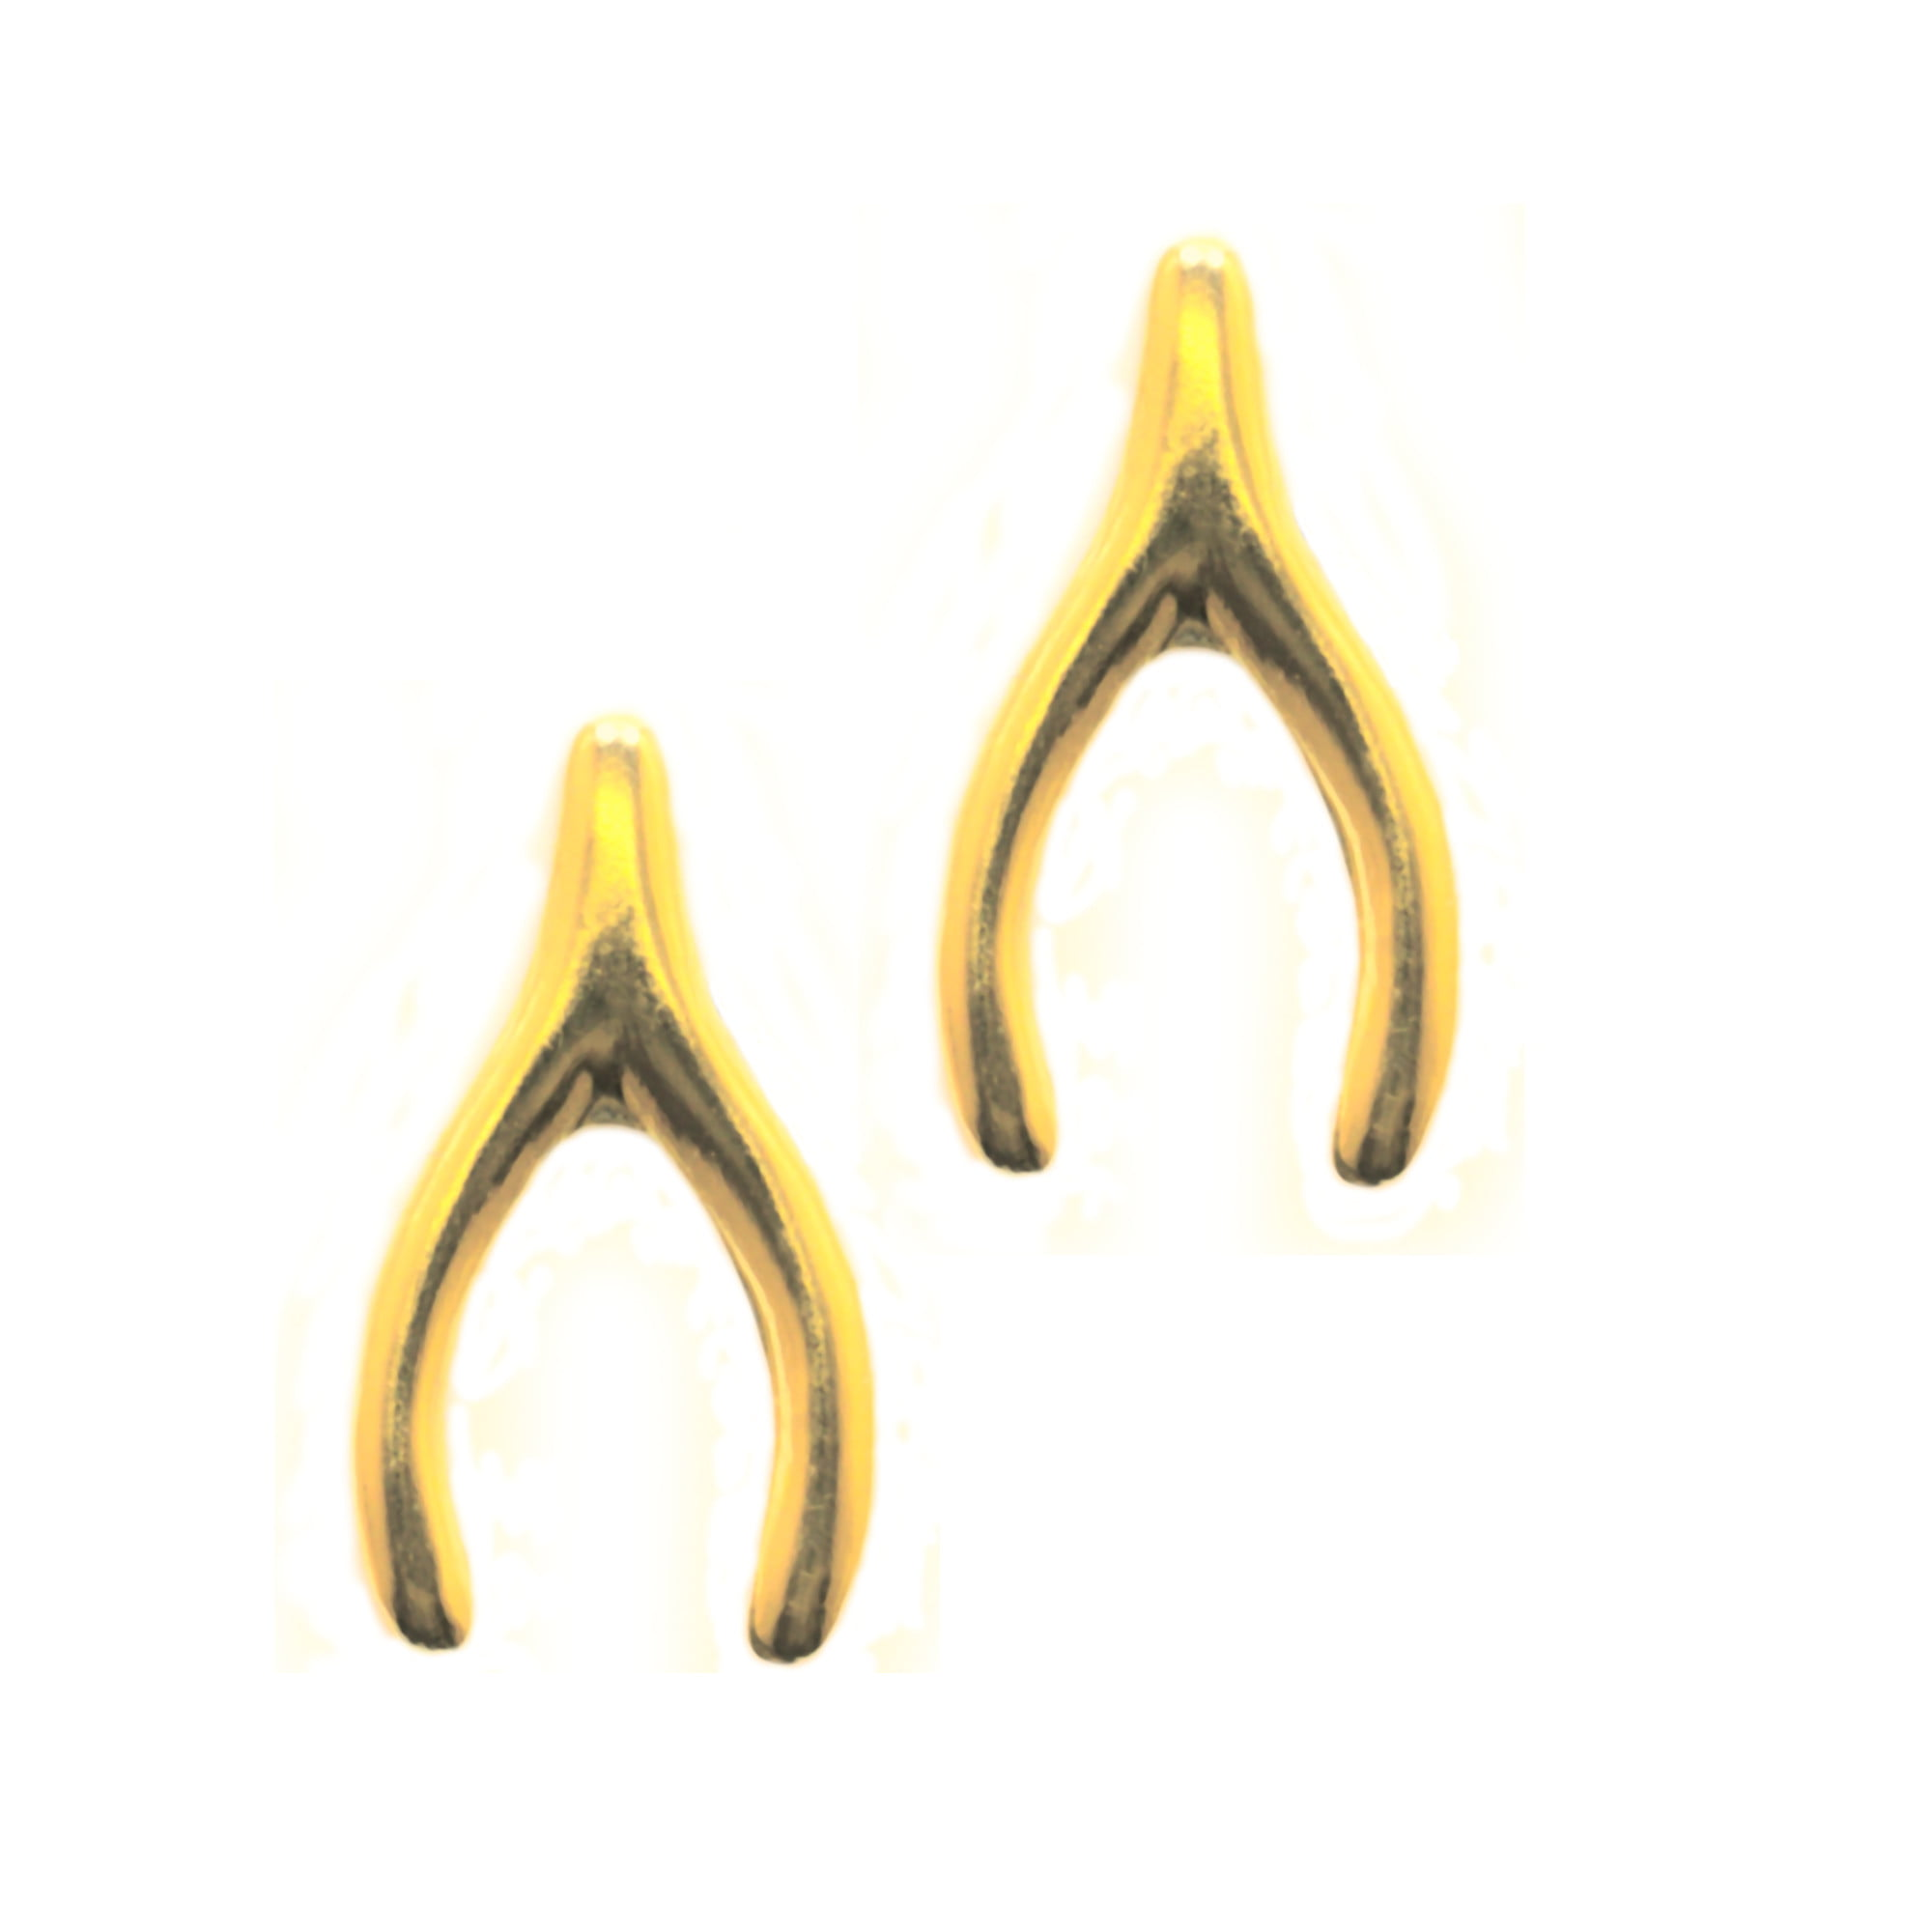 9ct yellow gold stud earrings in a wishbone shape